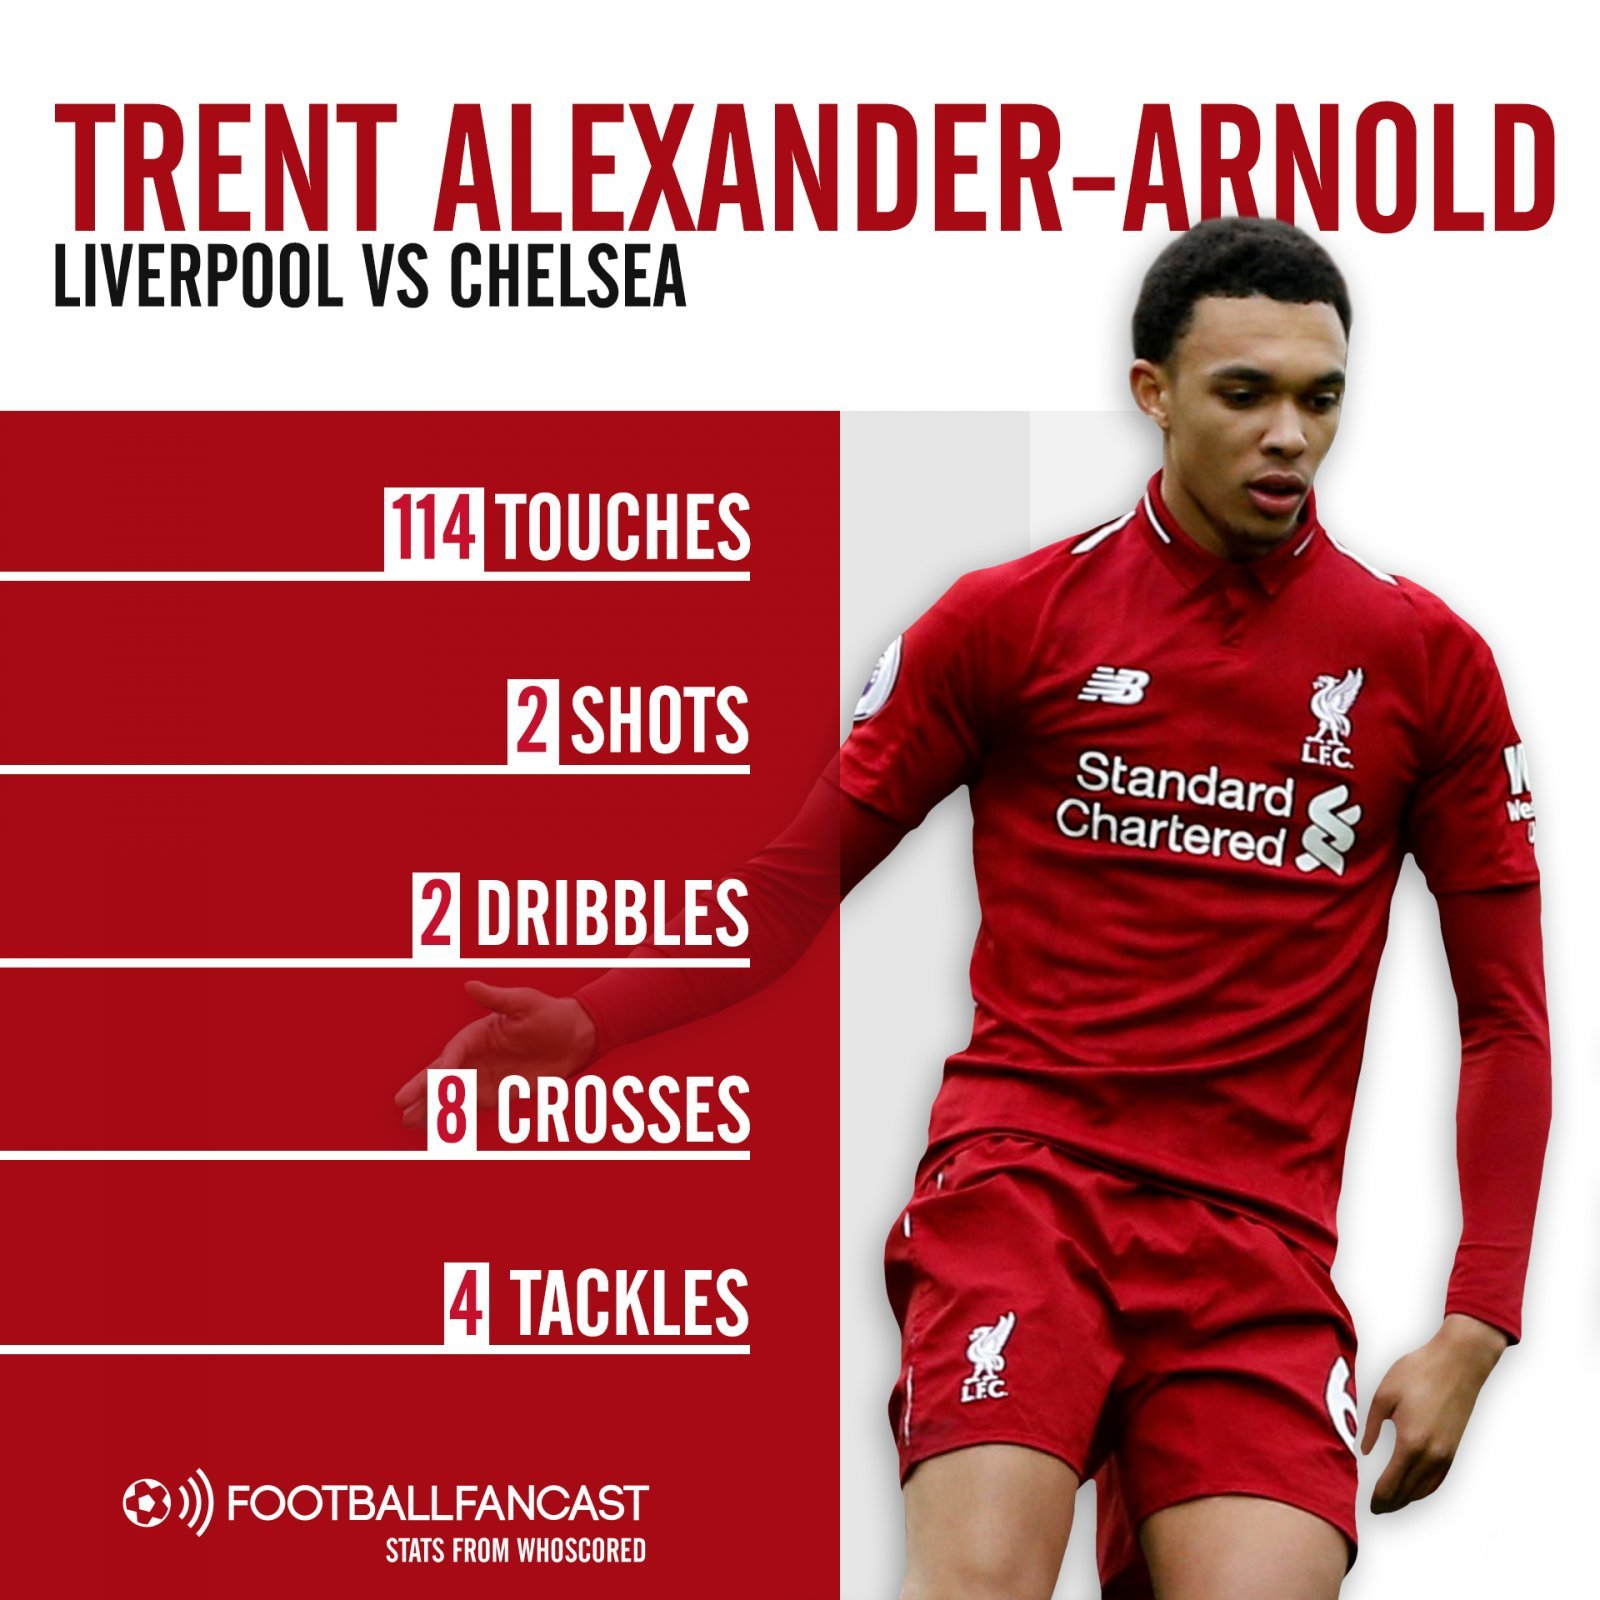 Trent Alexander Arnold vs Chelsea 1 - Opinion: Liverpool legend in the making quietly dropped his best ever performance on Sunday